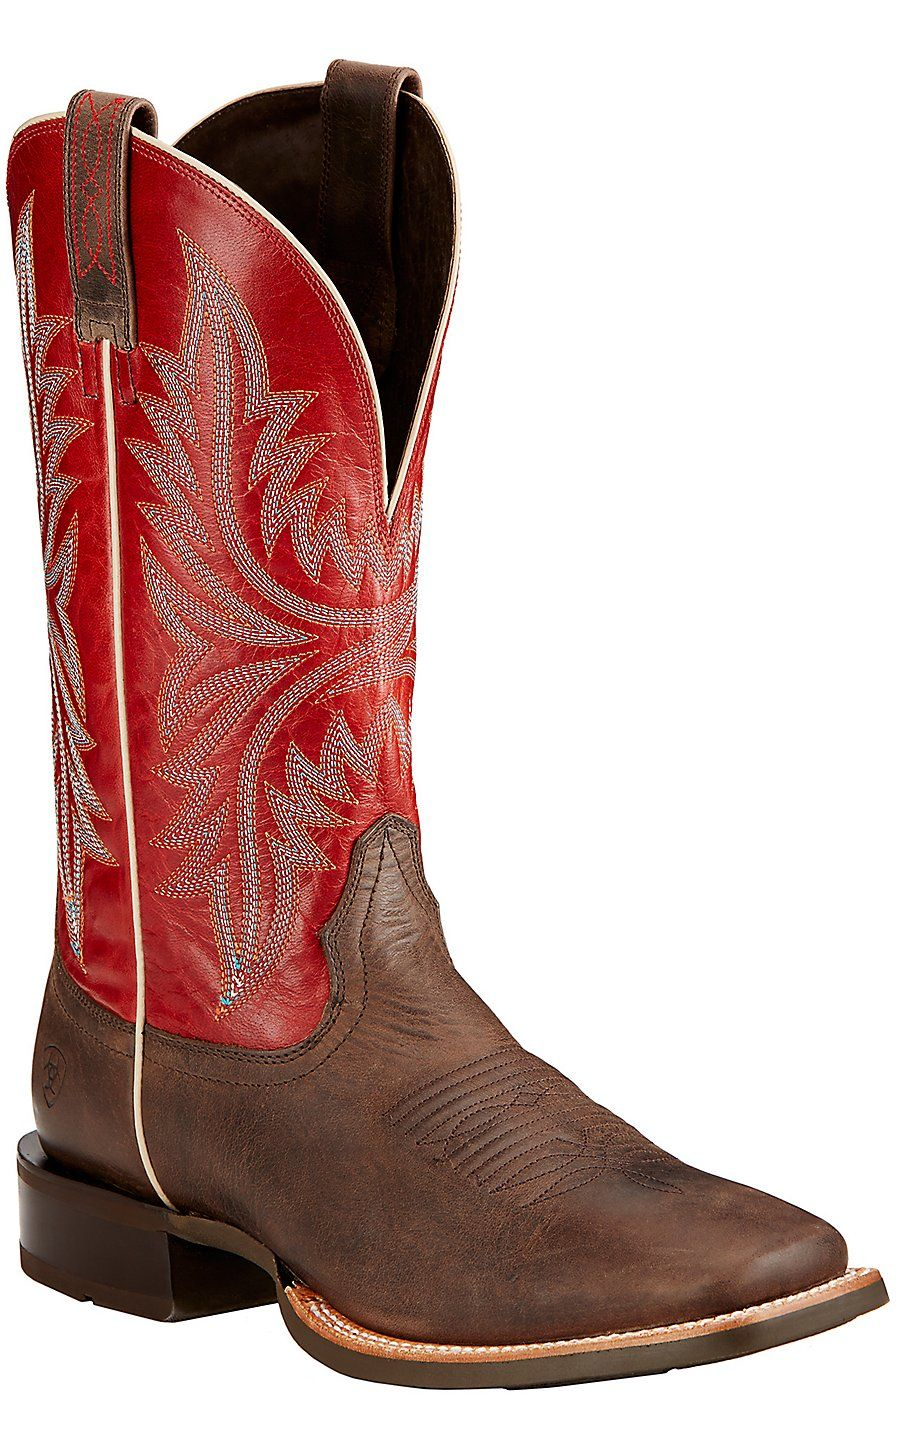 21f112c00c8 Ariat Cowhand Men s Murky Brown with Red Top Double Welt Square Toe Western  Boots